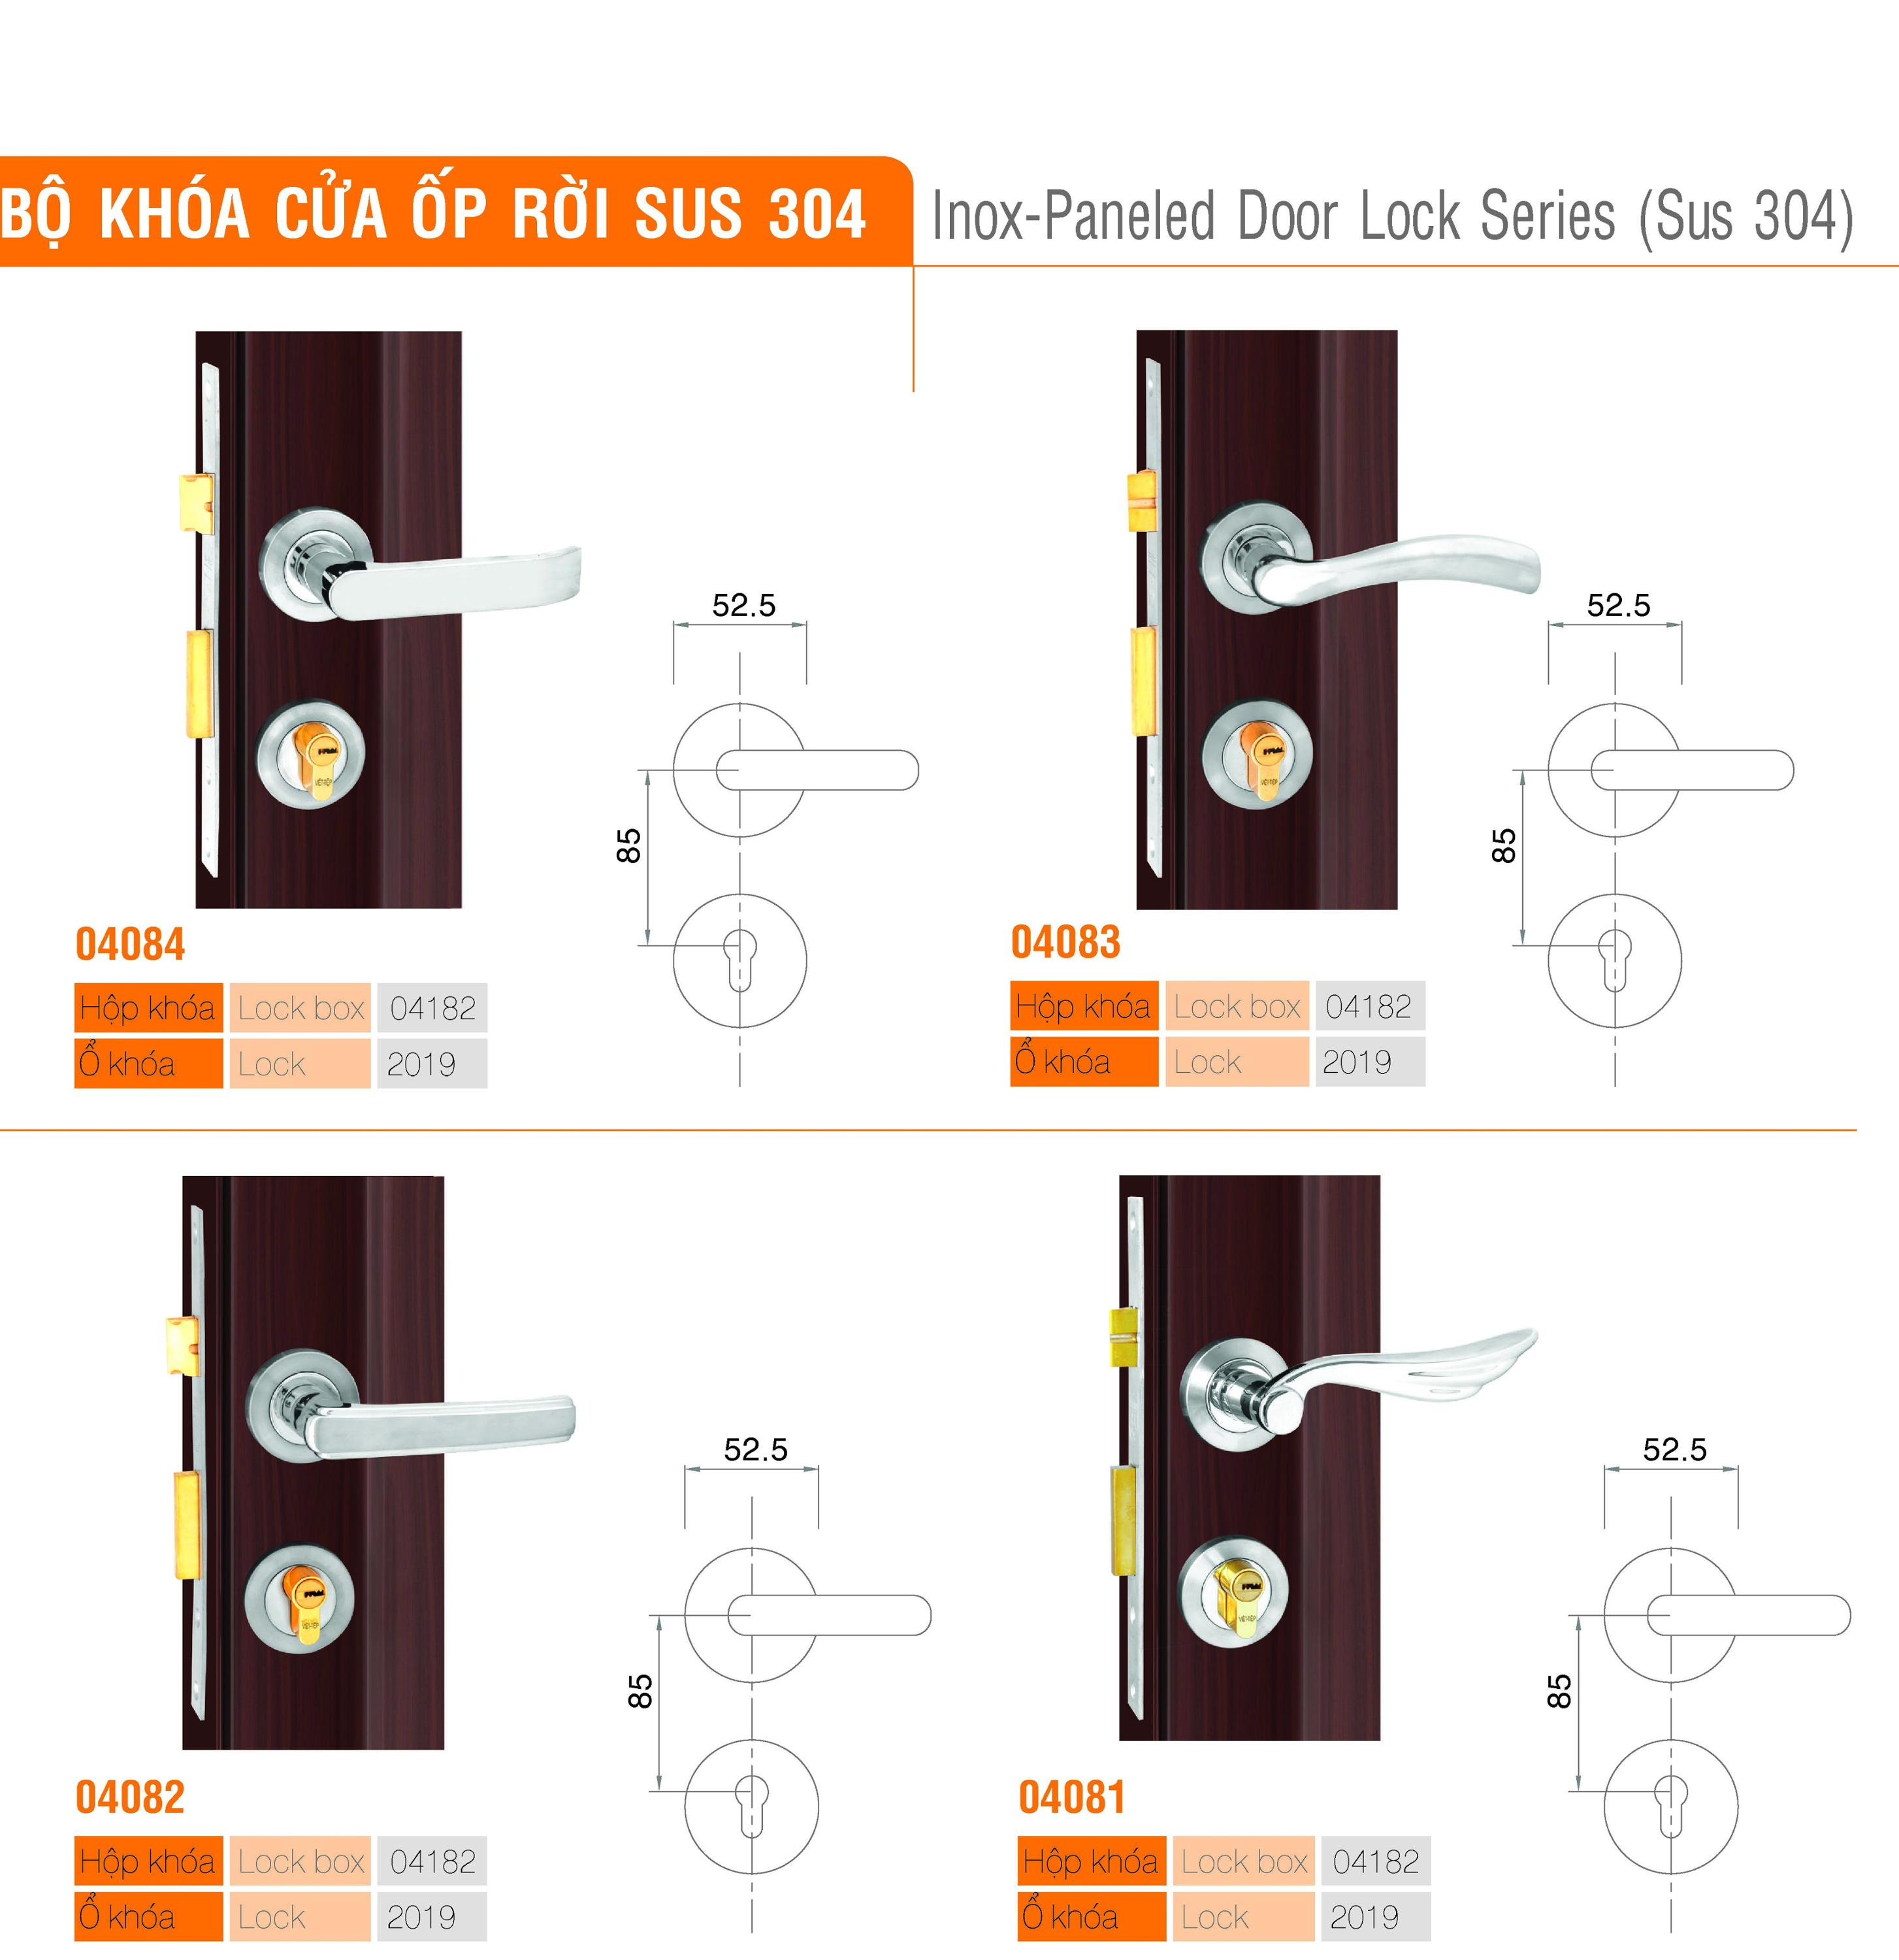 Inox-Paneled Door Lock Series (Sus 304)